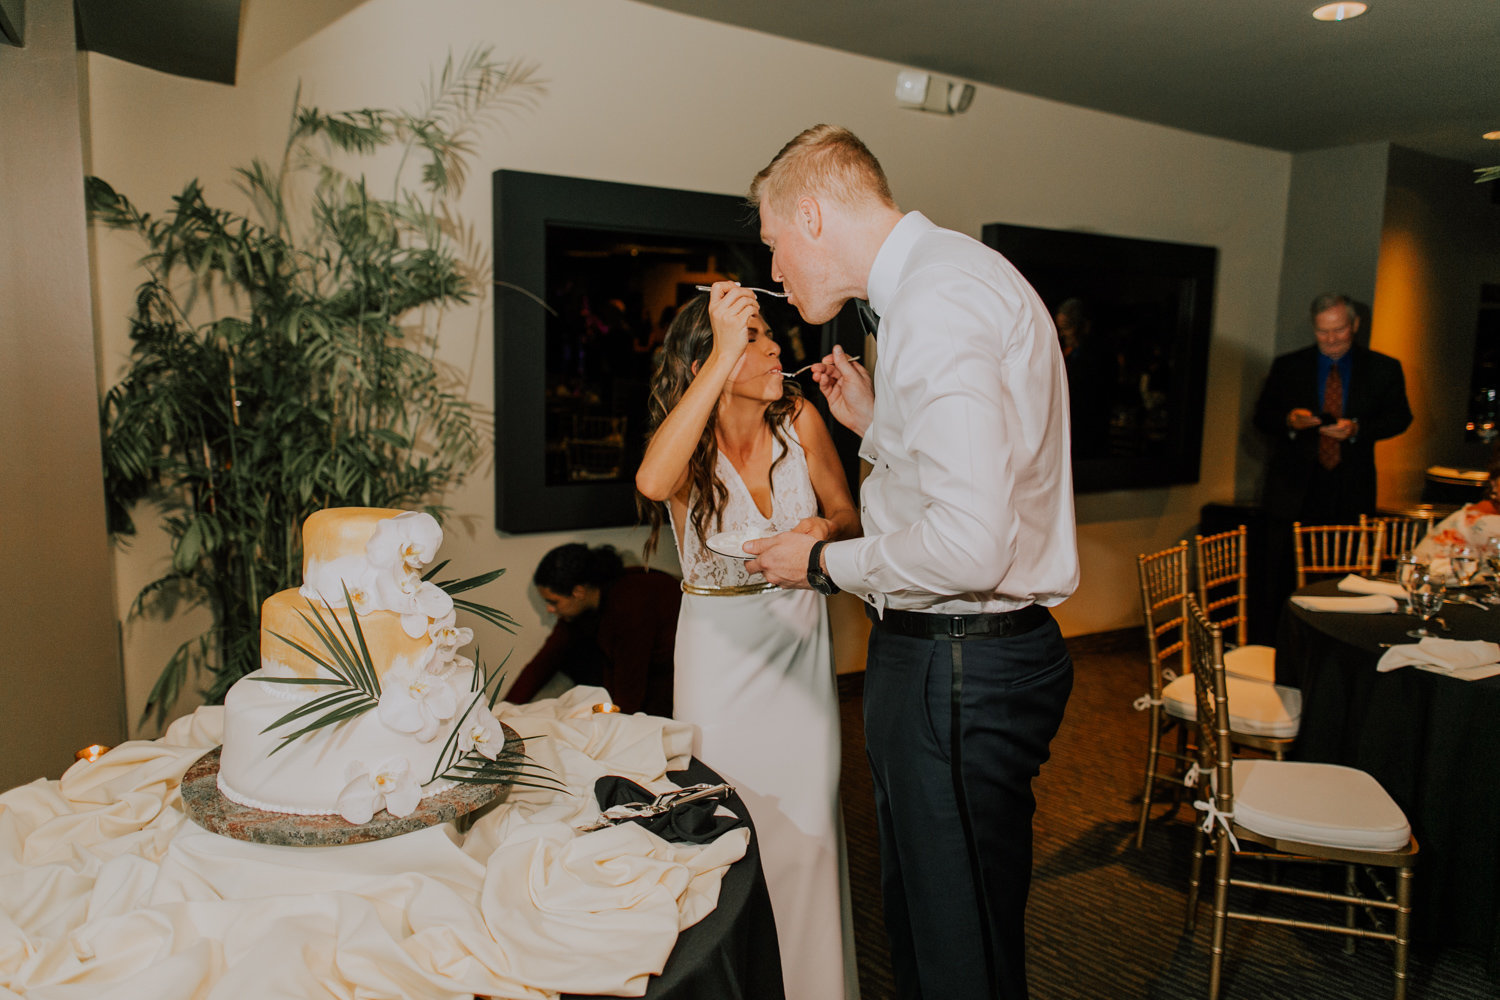 Brianna Broyles_Spencers Wedding_Palm Springs_Wedding Photographer-124